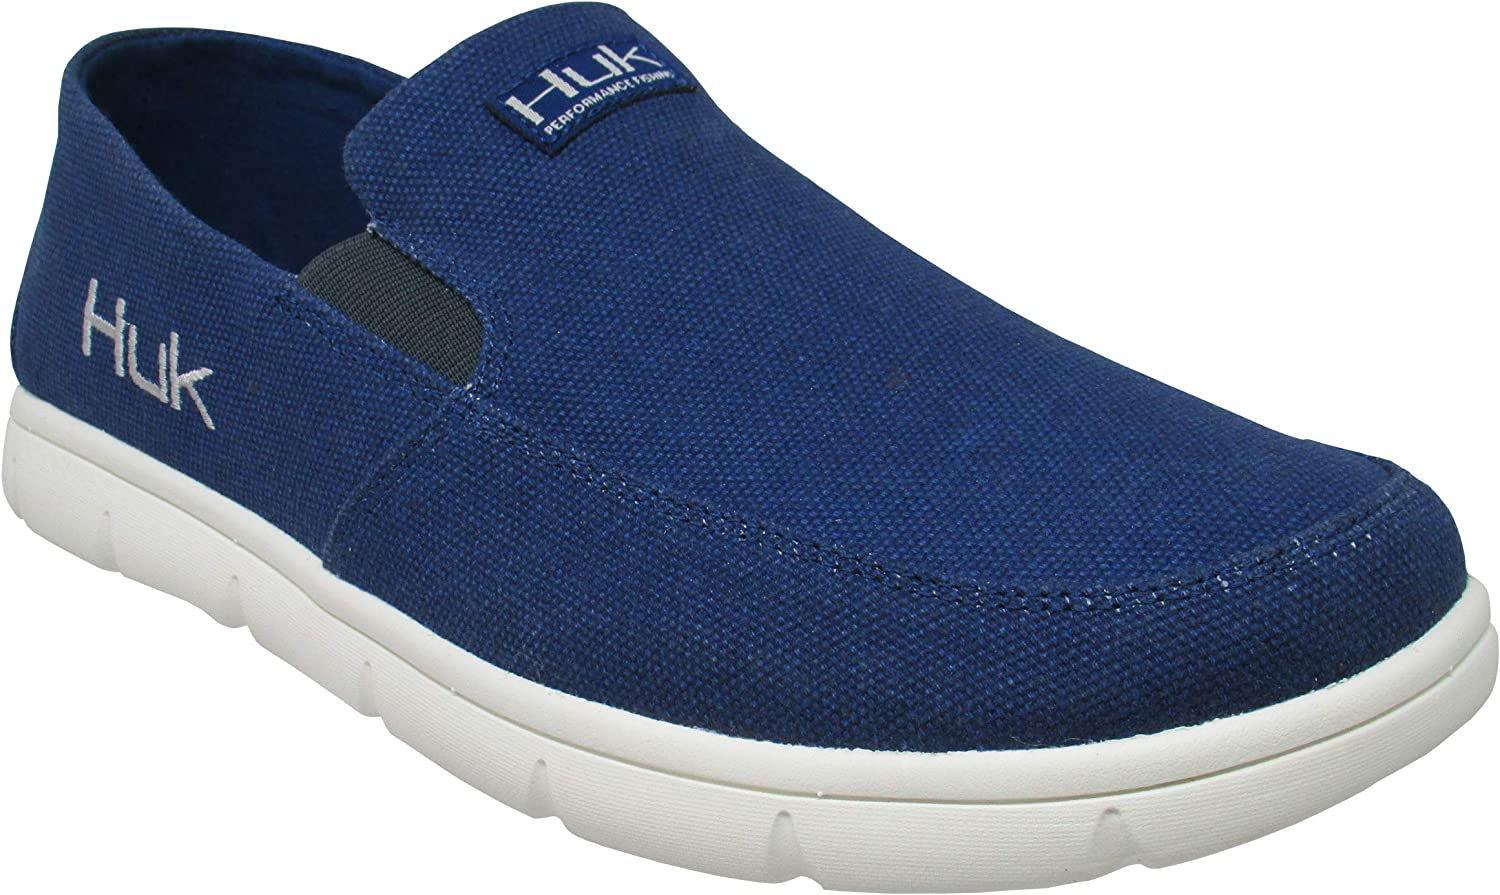 HUK Brewster Casual Shoes